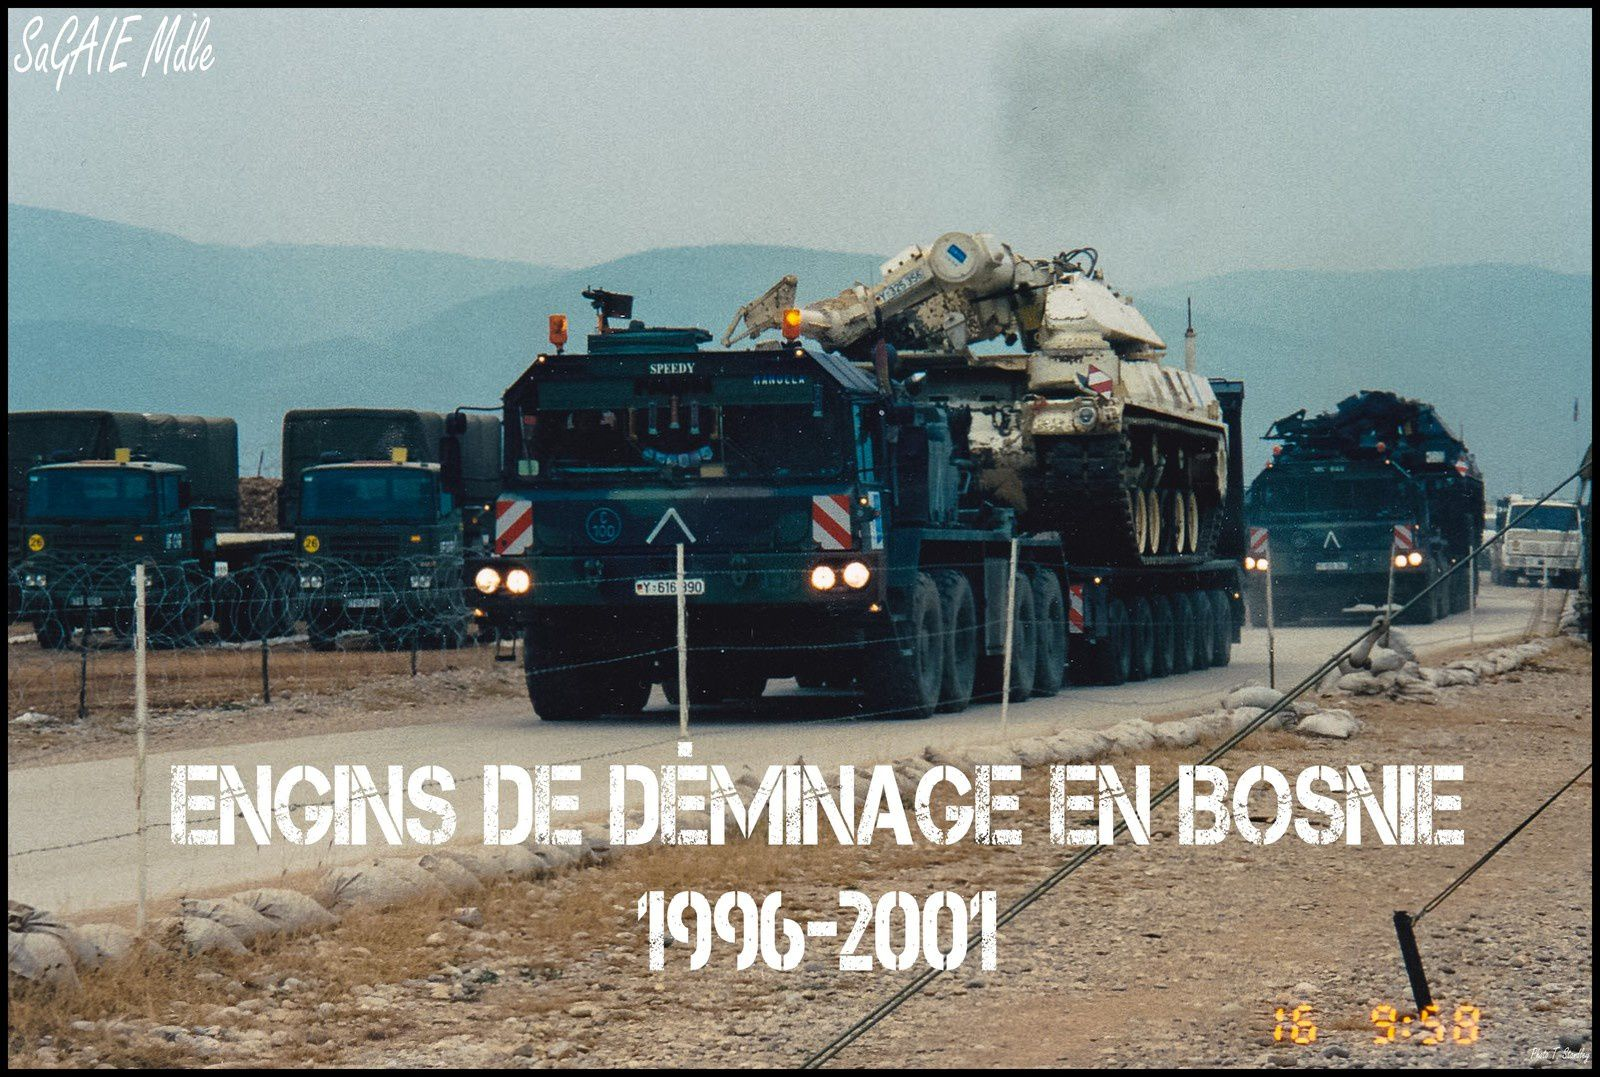 Engins de déminage, Bosnie 1996-2001